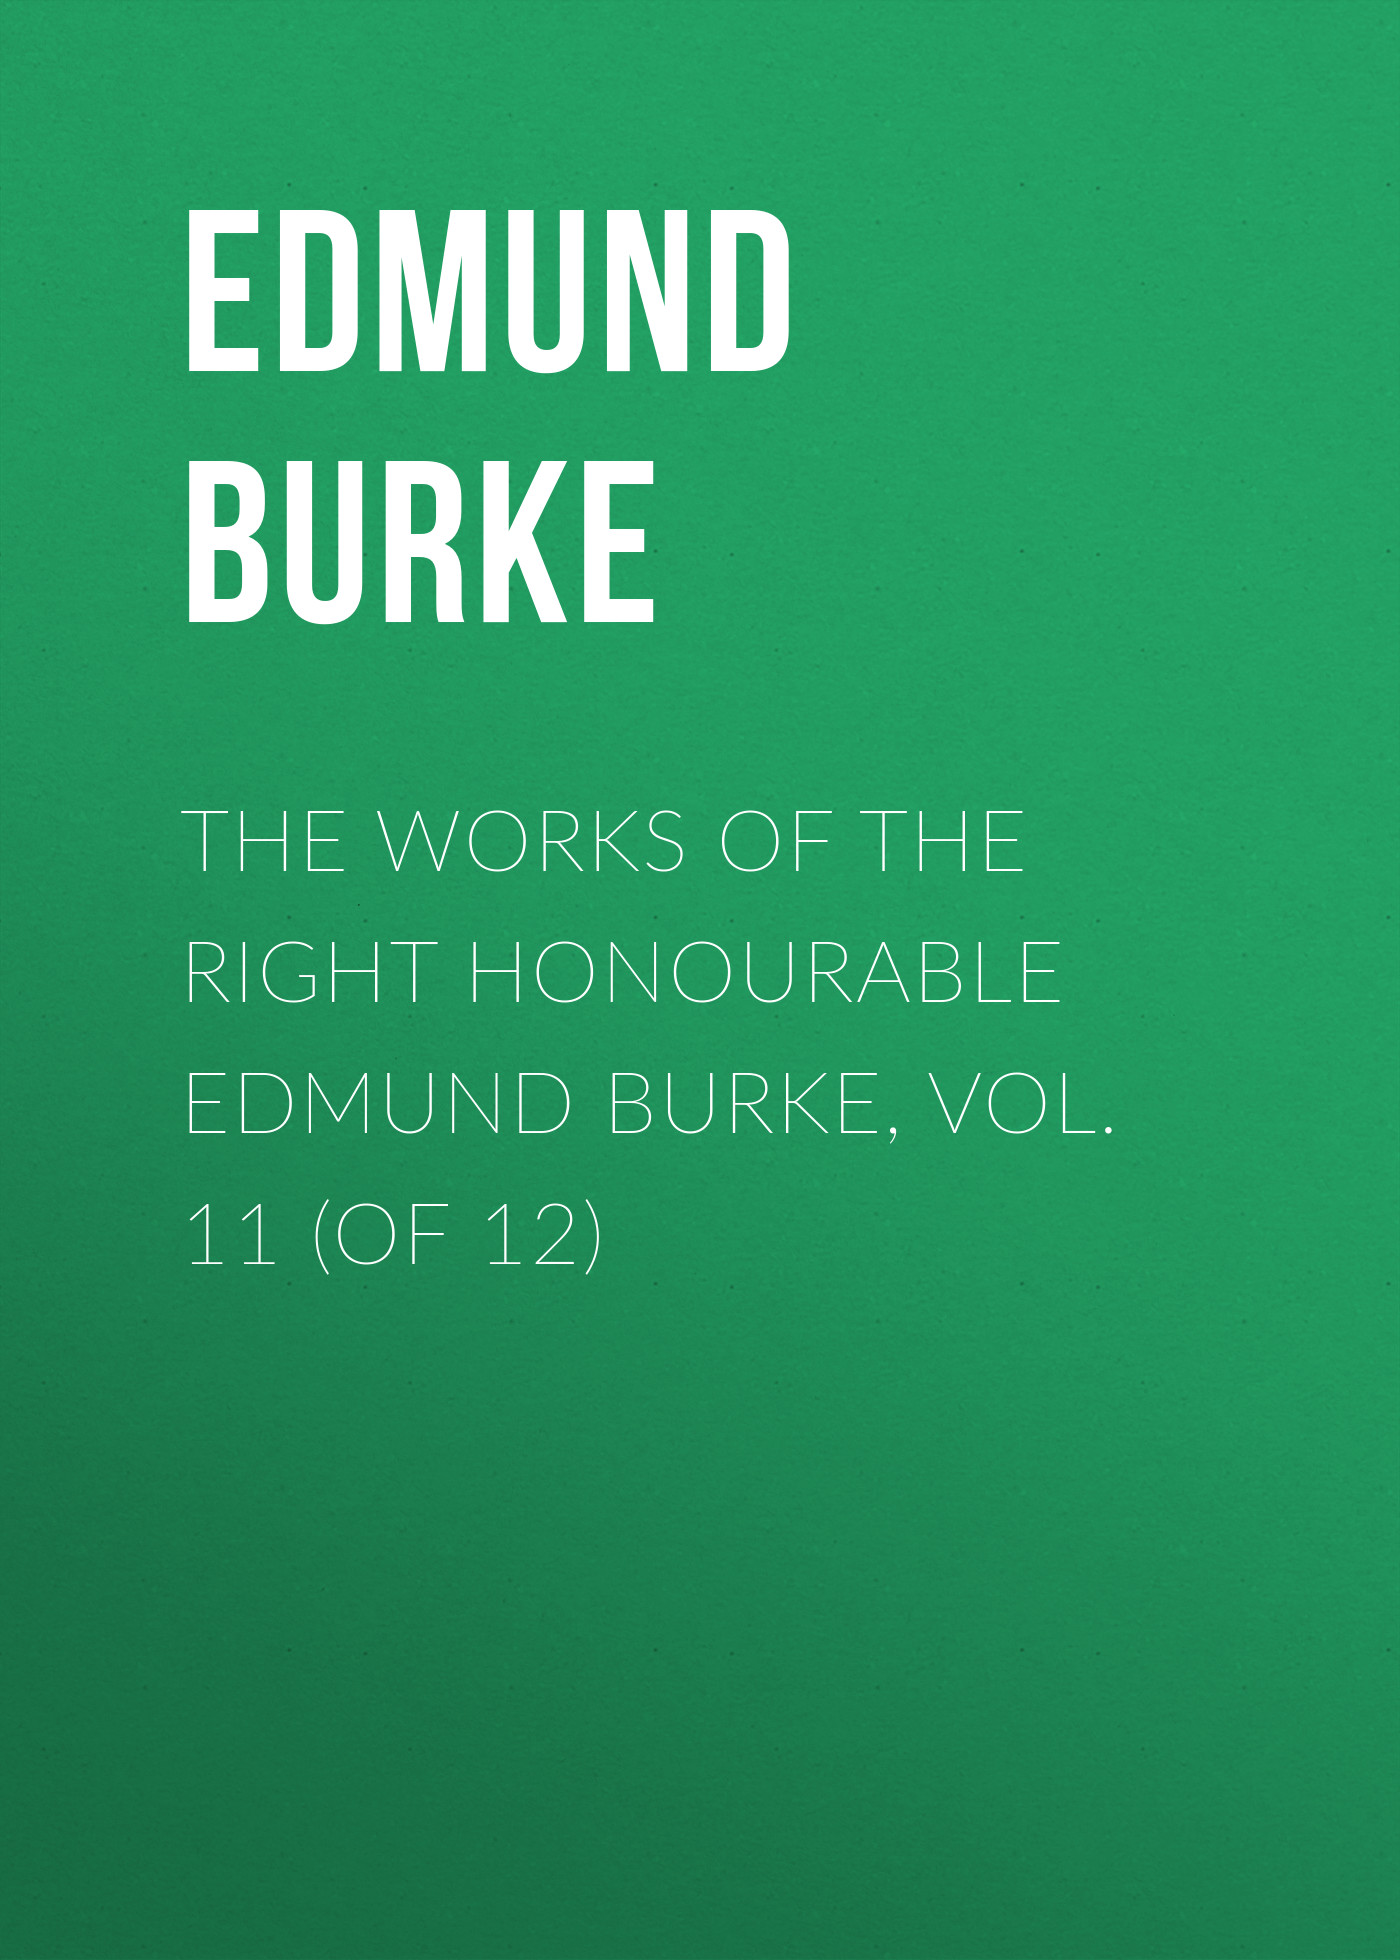 Edmund Burke The Works of the Right Honourable Edmund Burke, Vol. 11 (of 12)